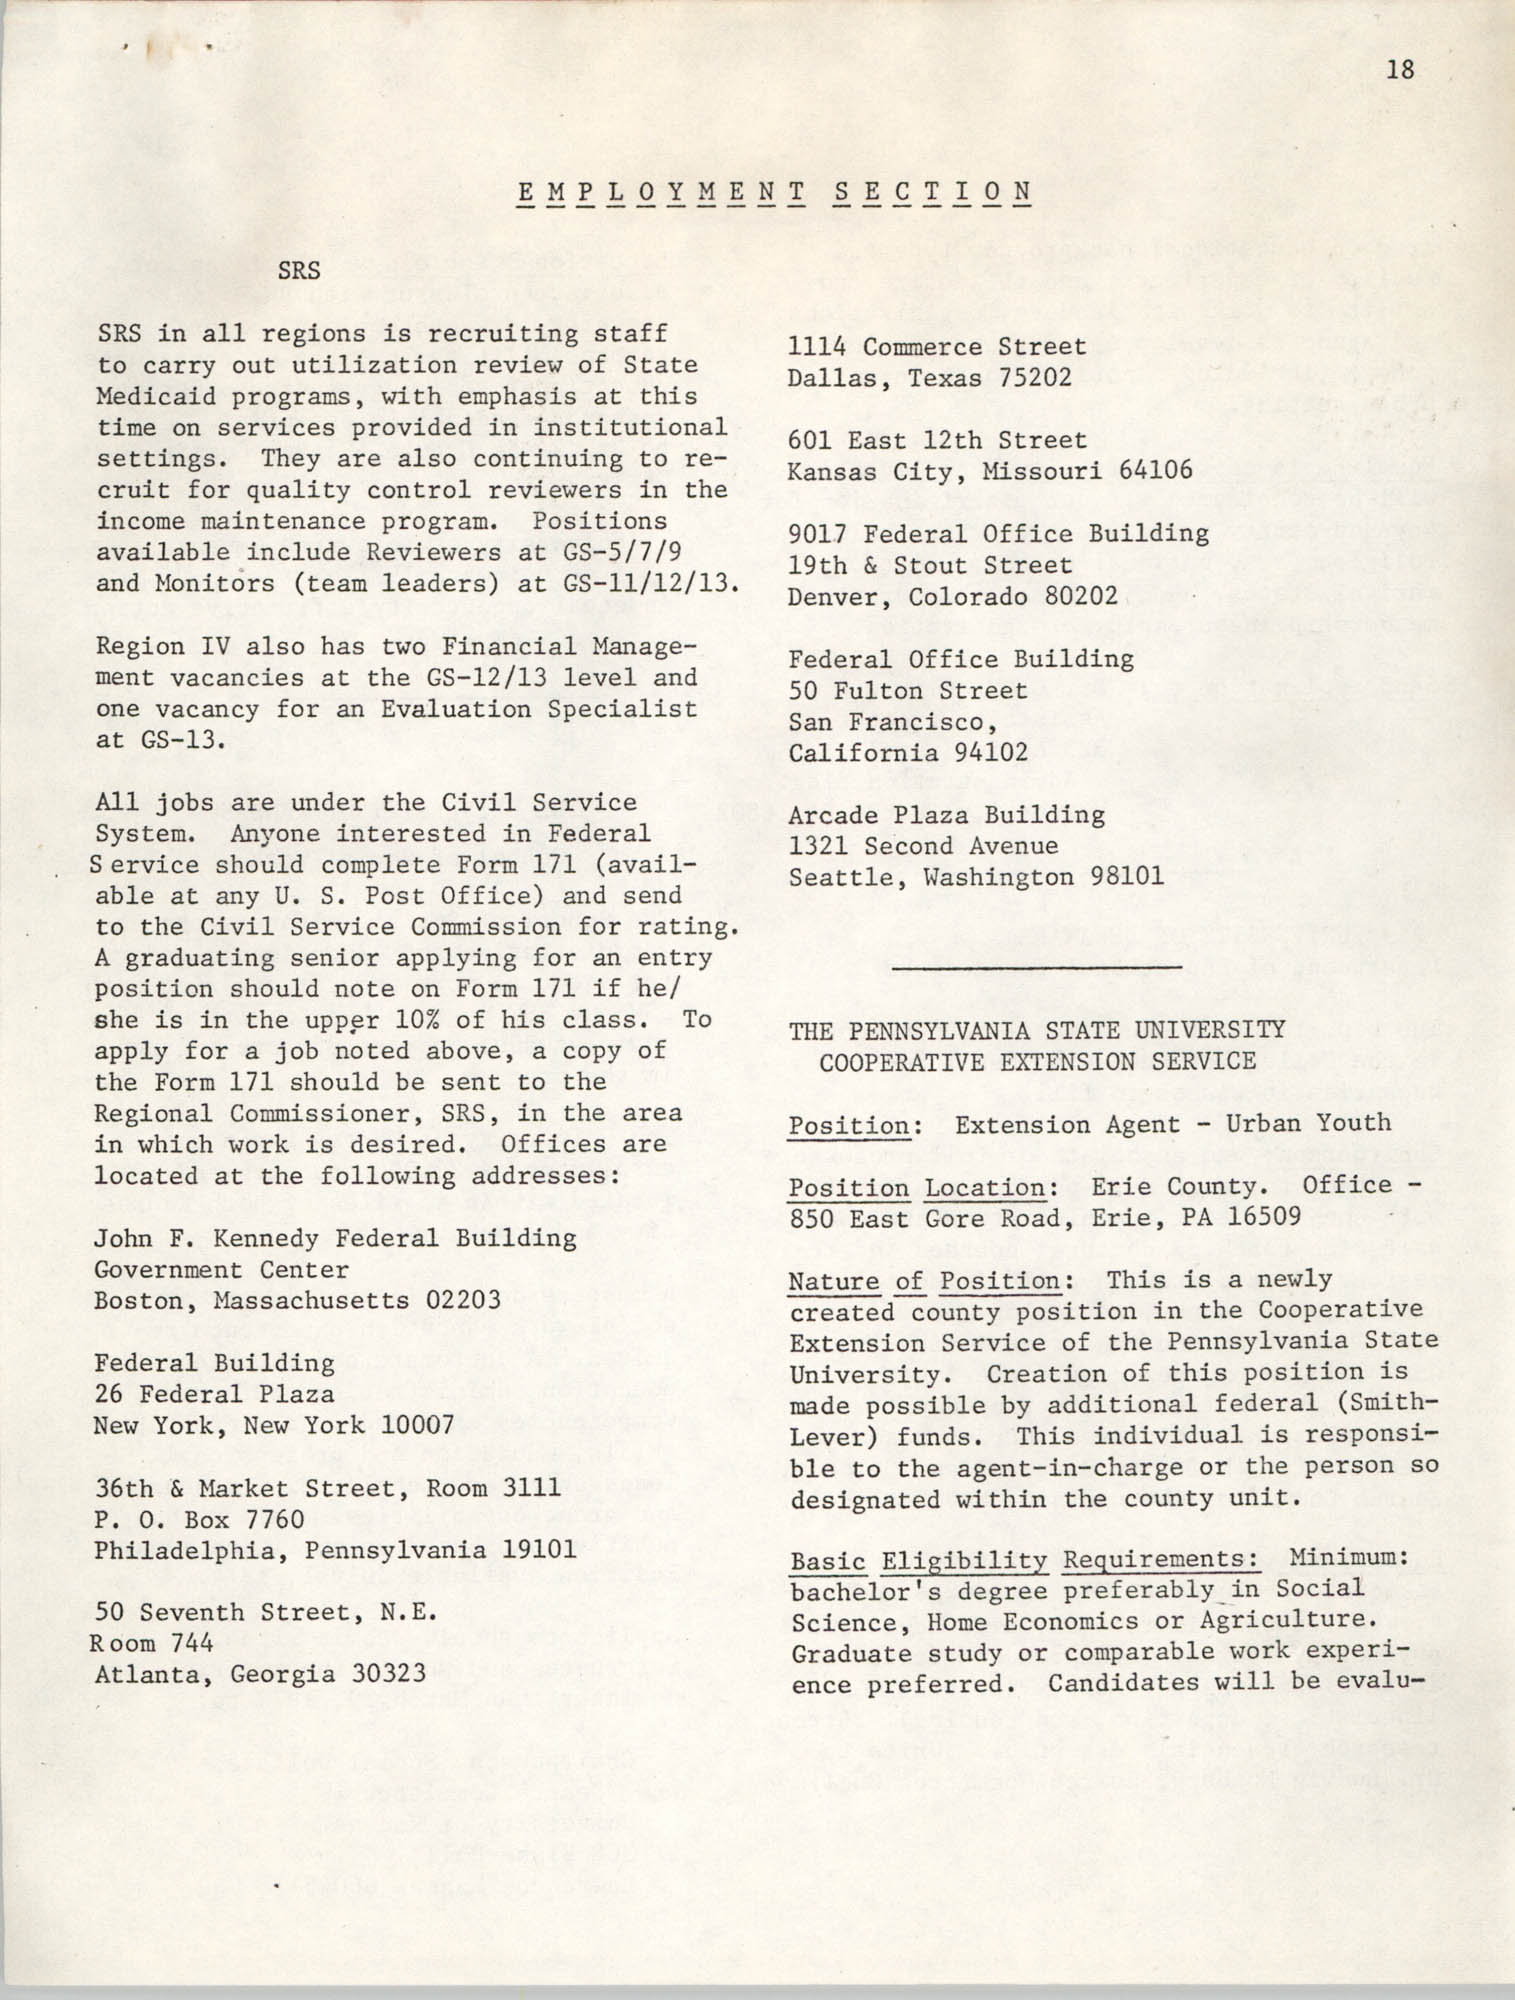 SHARE, Volume II, Number 3, March 1974, Page 18